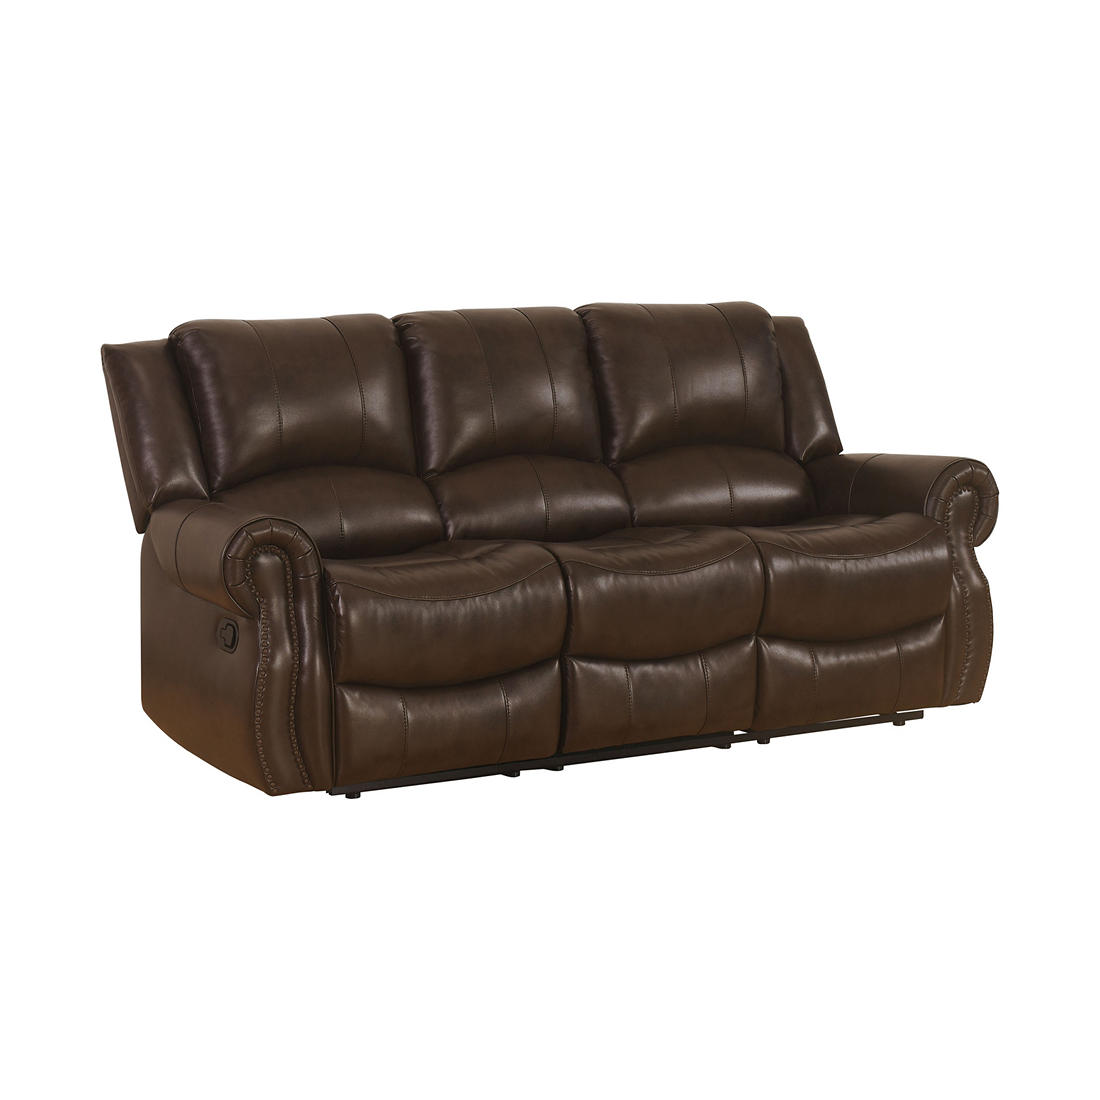 Abbyson Living Covington Faux Leather Reclining Sofa - Brown